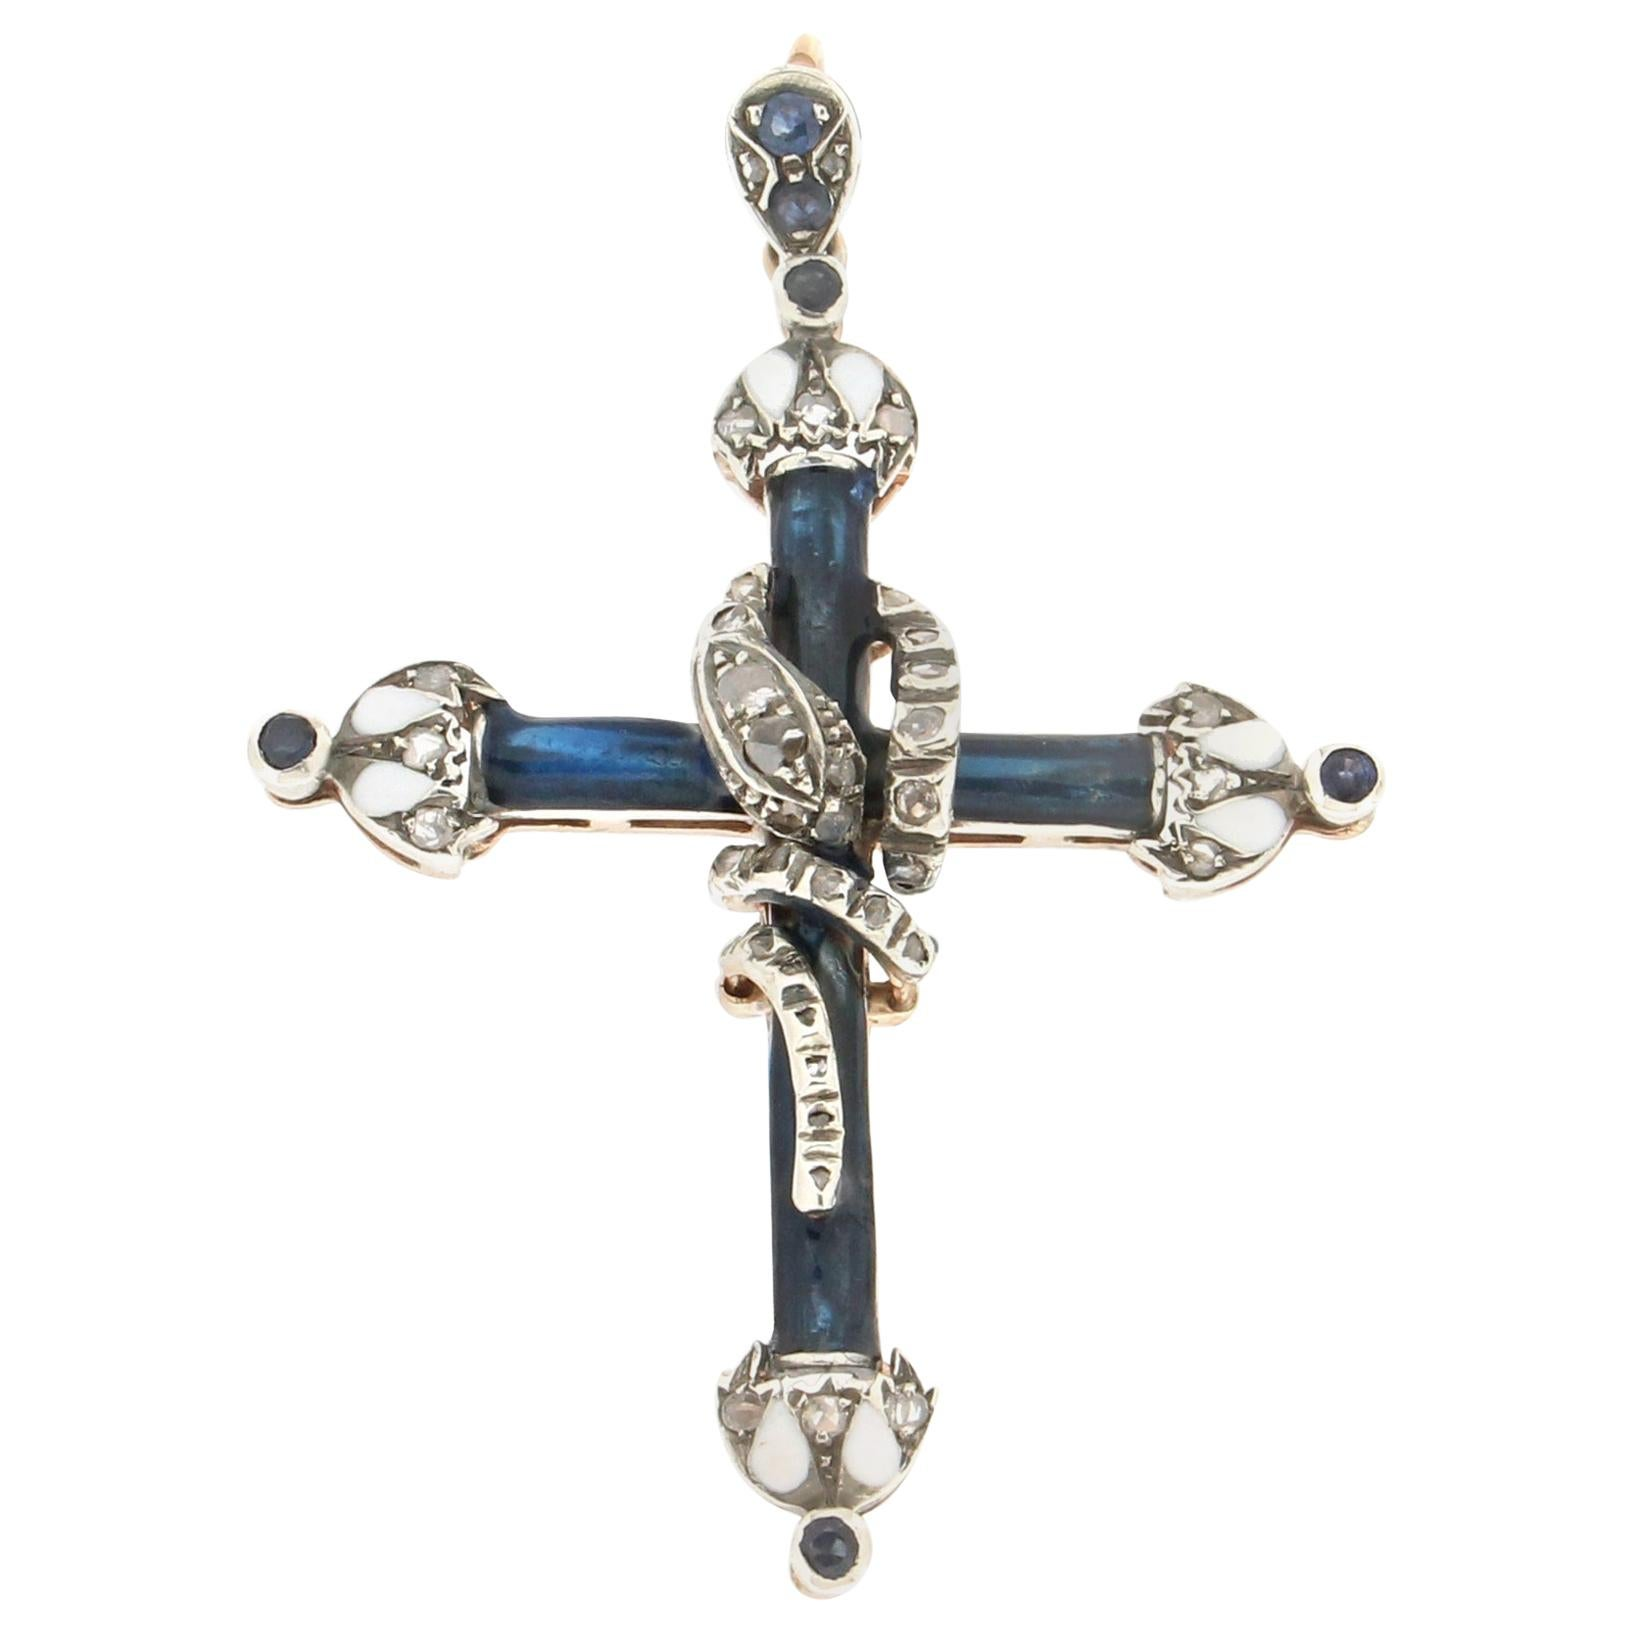 Handcraft Cross 14 Karat Yellow Gold Diamonds Sapphires Enamel Pendant Necklace